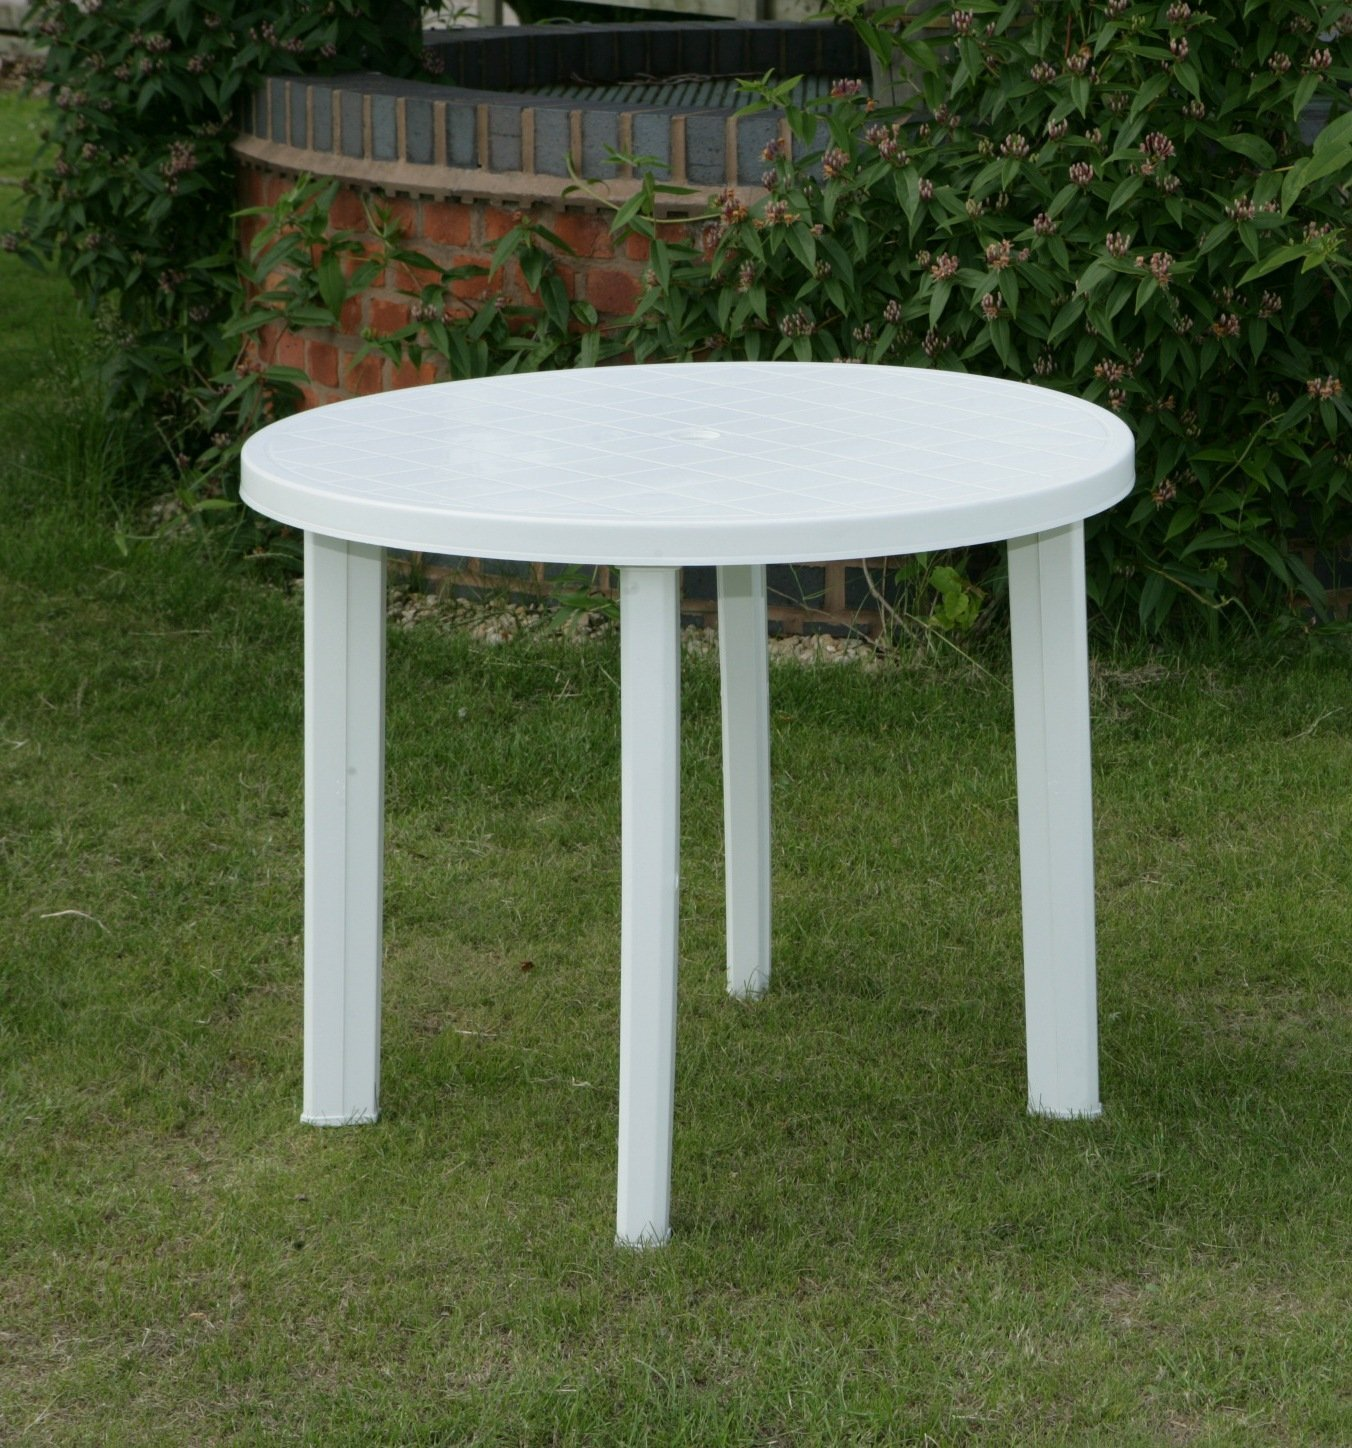 ROUND GARDEN TABLE ONLY  IN WHITE  RESIN PATIO FURNITURE OUTDOOR DINING   BISTRO  Amazon co uk  Garden   Outdoors. ROUND GARDEN TABLE ONLY  IN WHITE  RESIN PATIO FURNITURE OUTDOOR